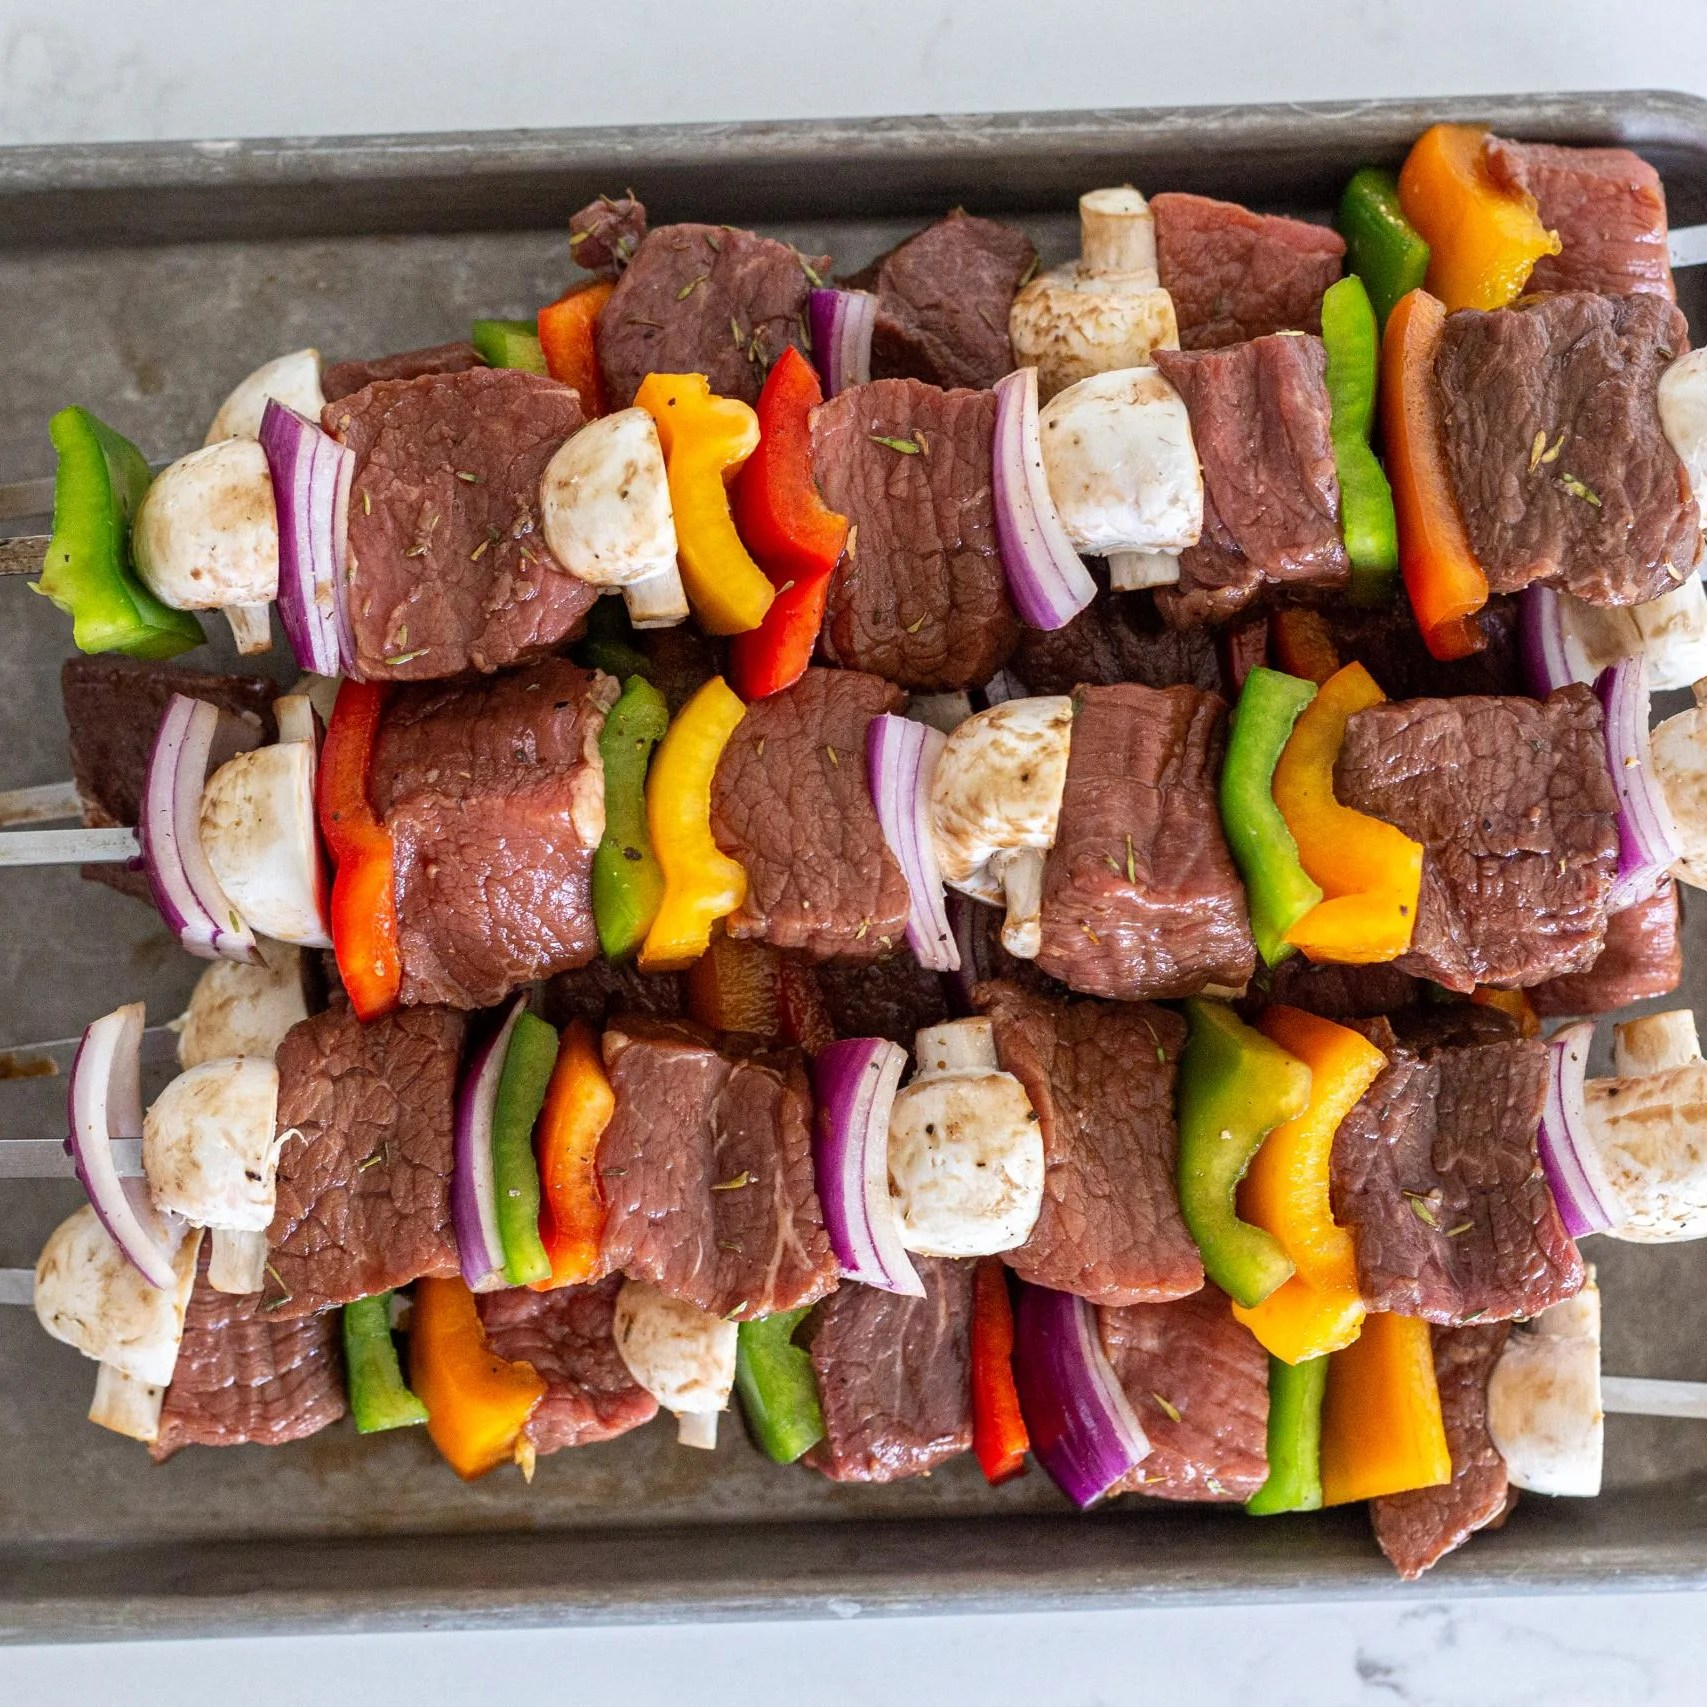 Shish Kabob with beef and veggies on a baking sheet